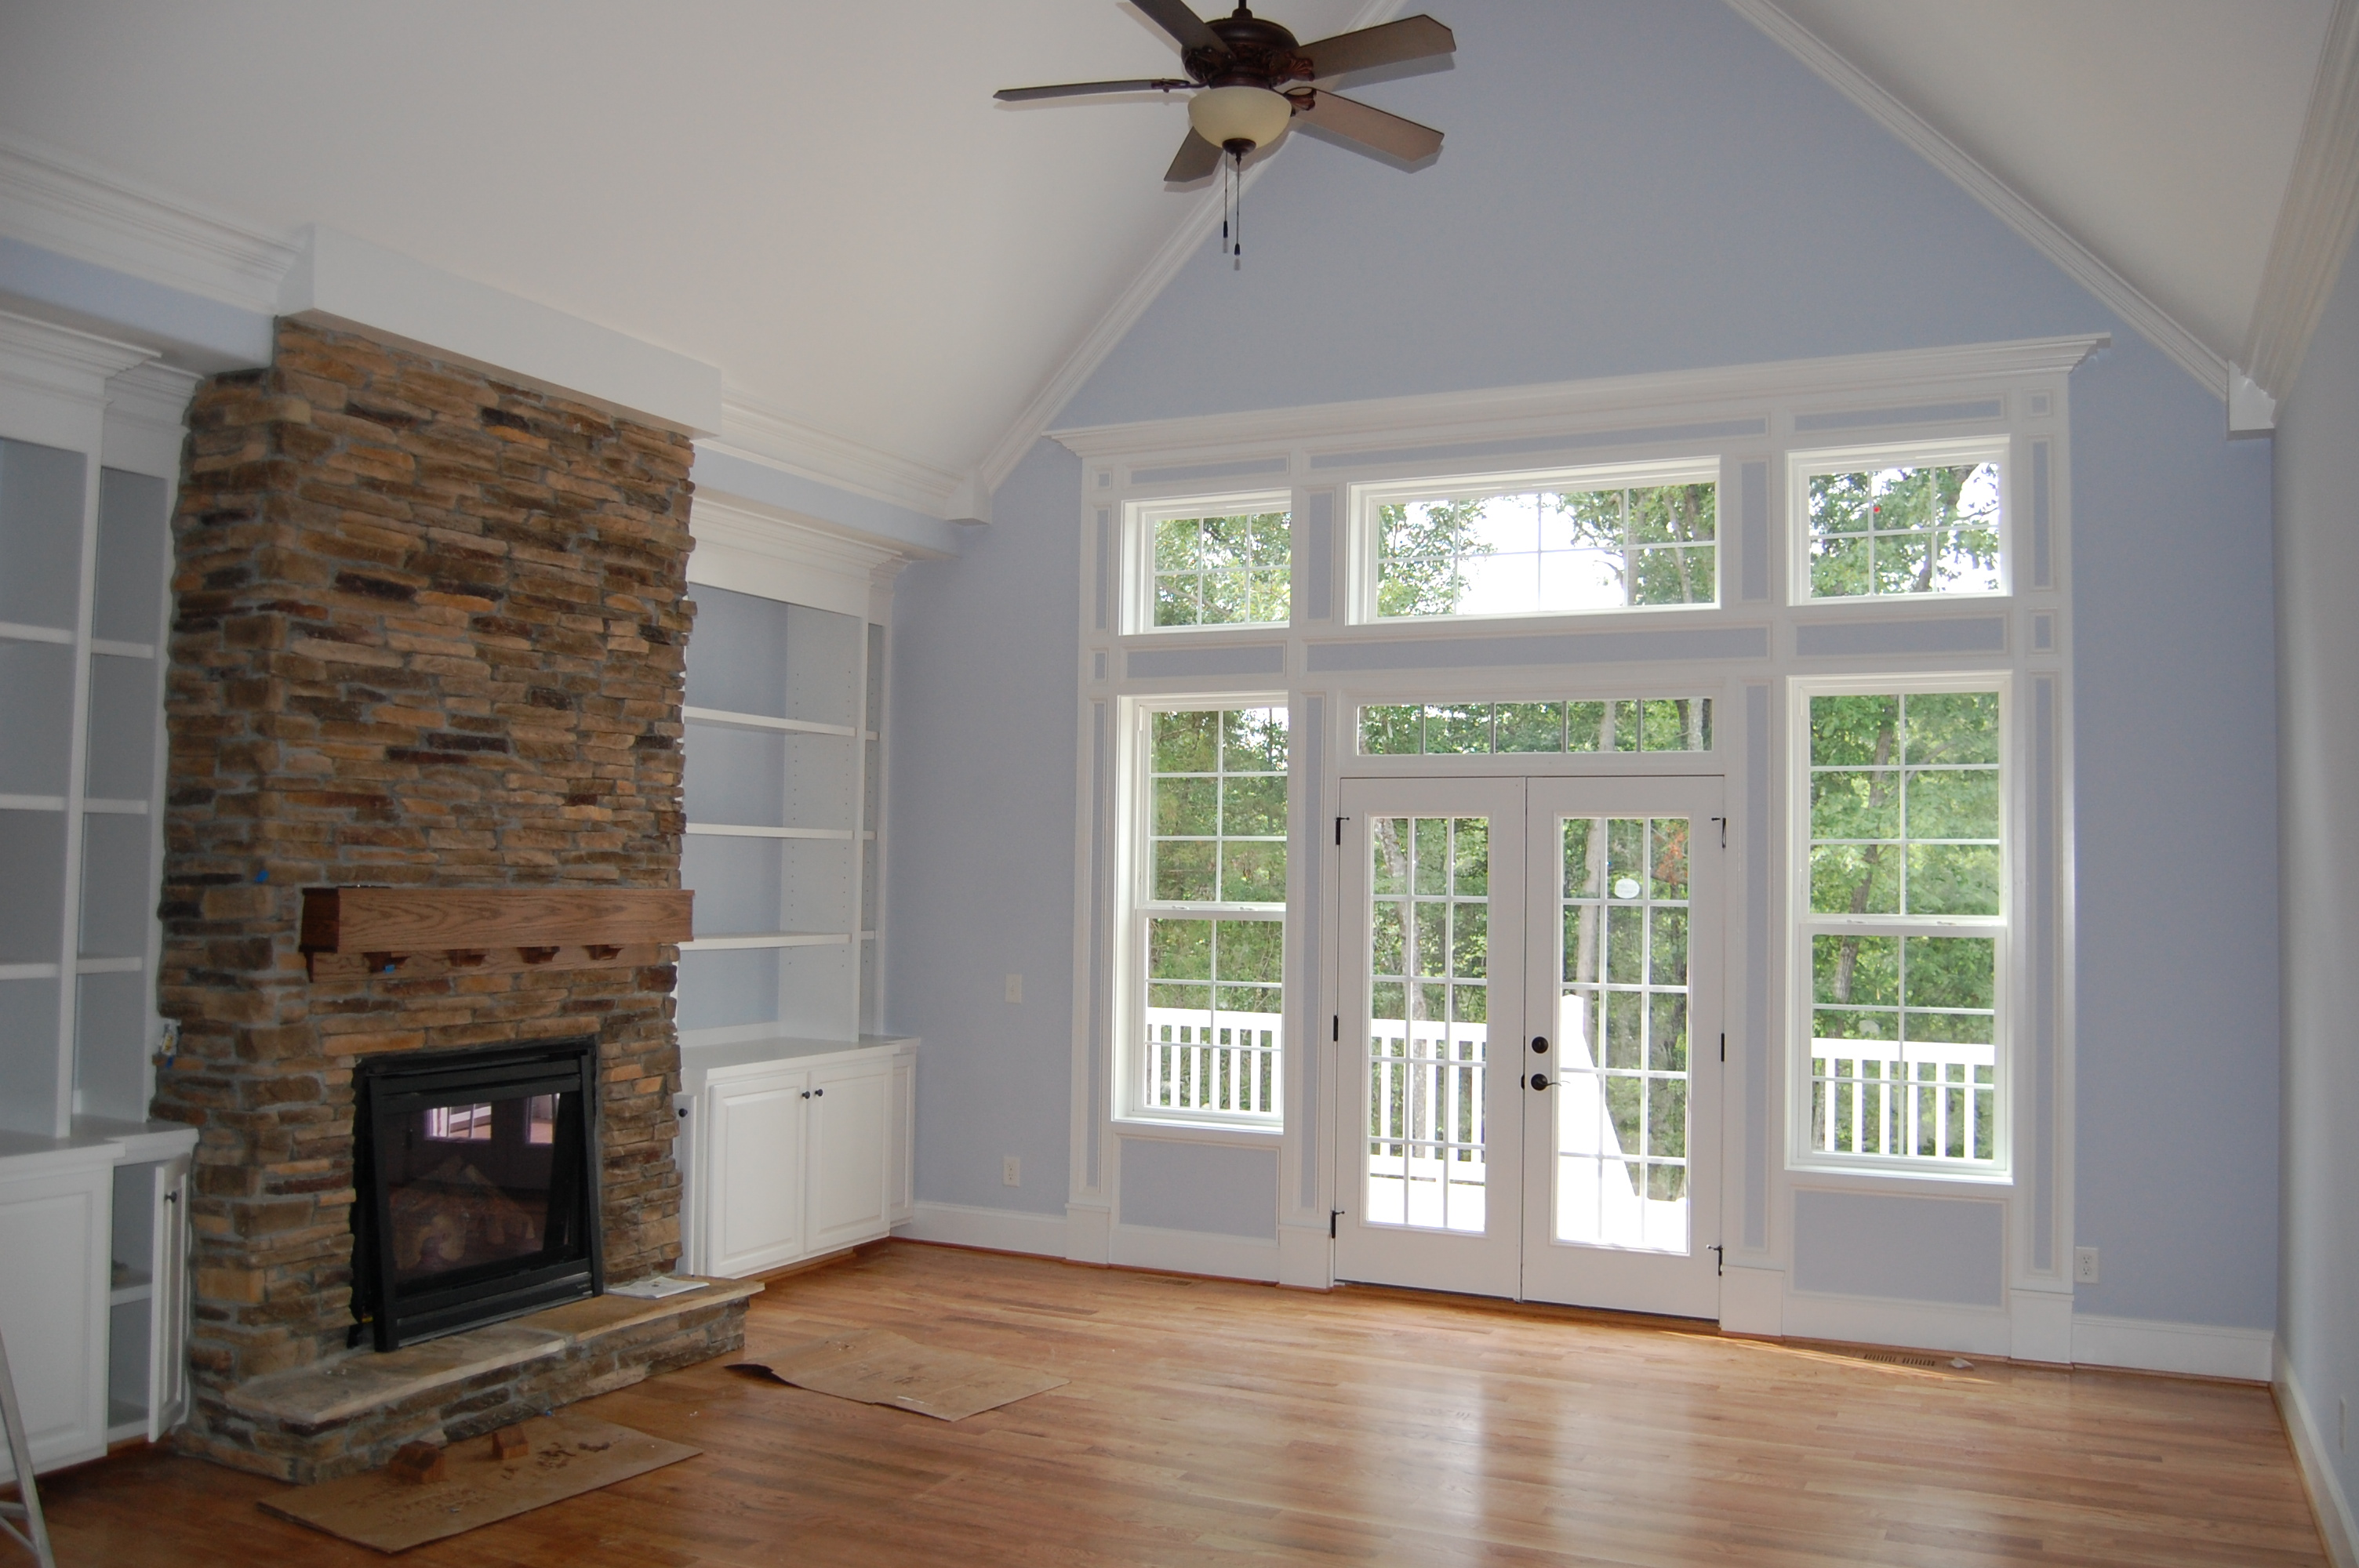 Stone Fireplace Custom Built Ins Vaulted Ceiling Arena Builders Award Winning Home